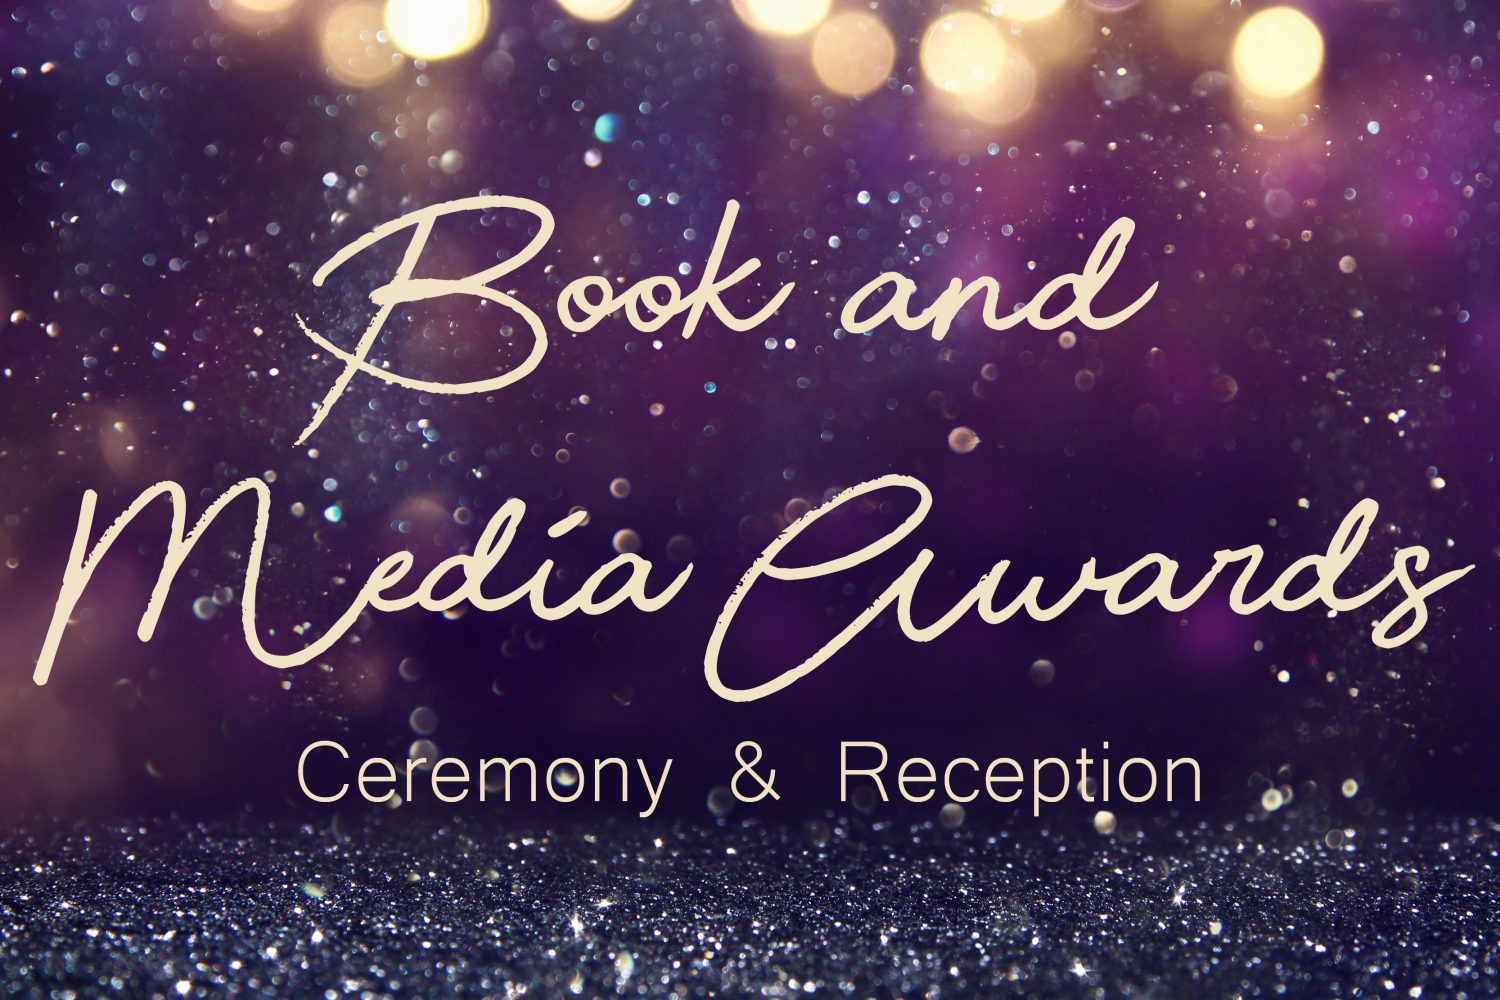 book-and-media-awards-ceremony-and-reception